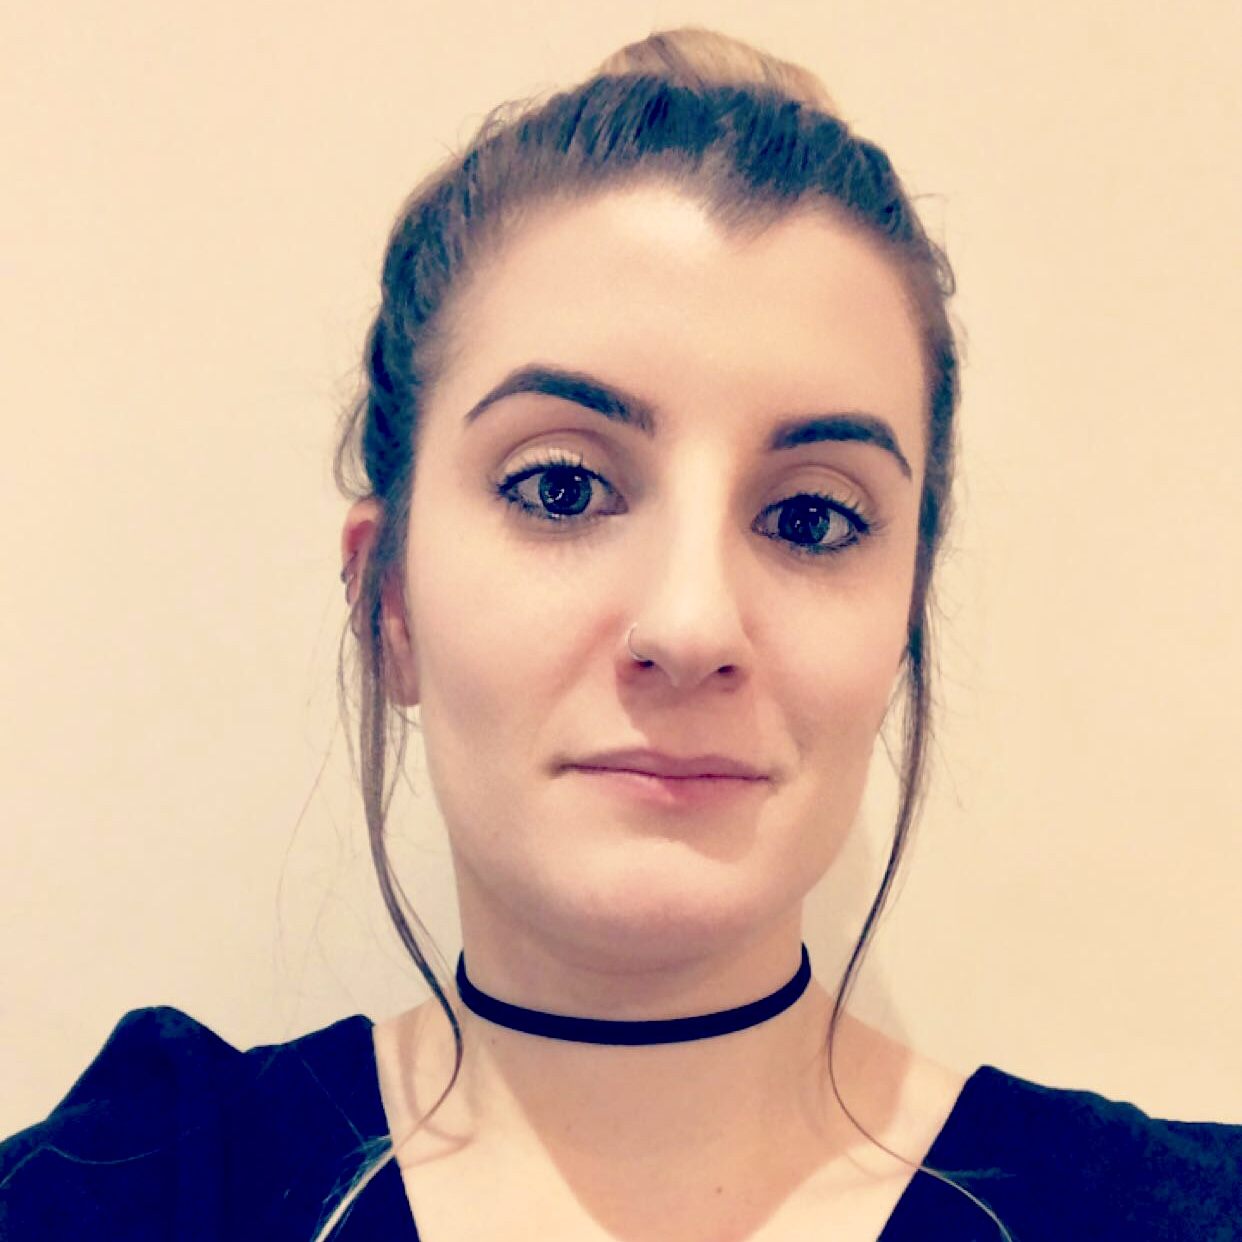 Tegan combines her experience of working with children, often in a pastoral capacity  with her interest in humanitarian work which has included volunteering in Refugee camps